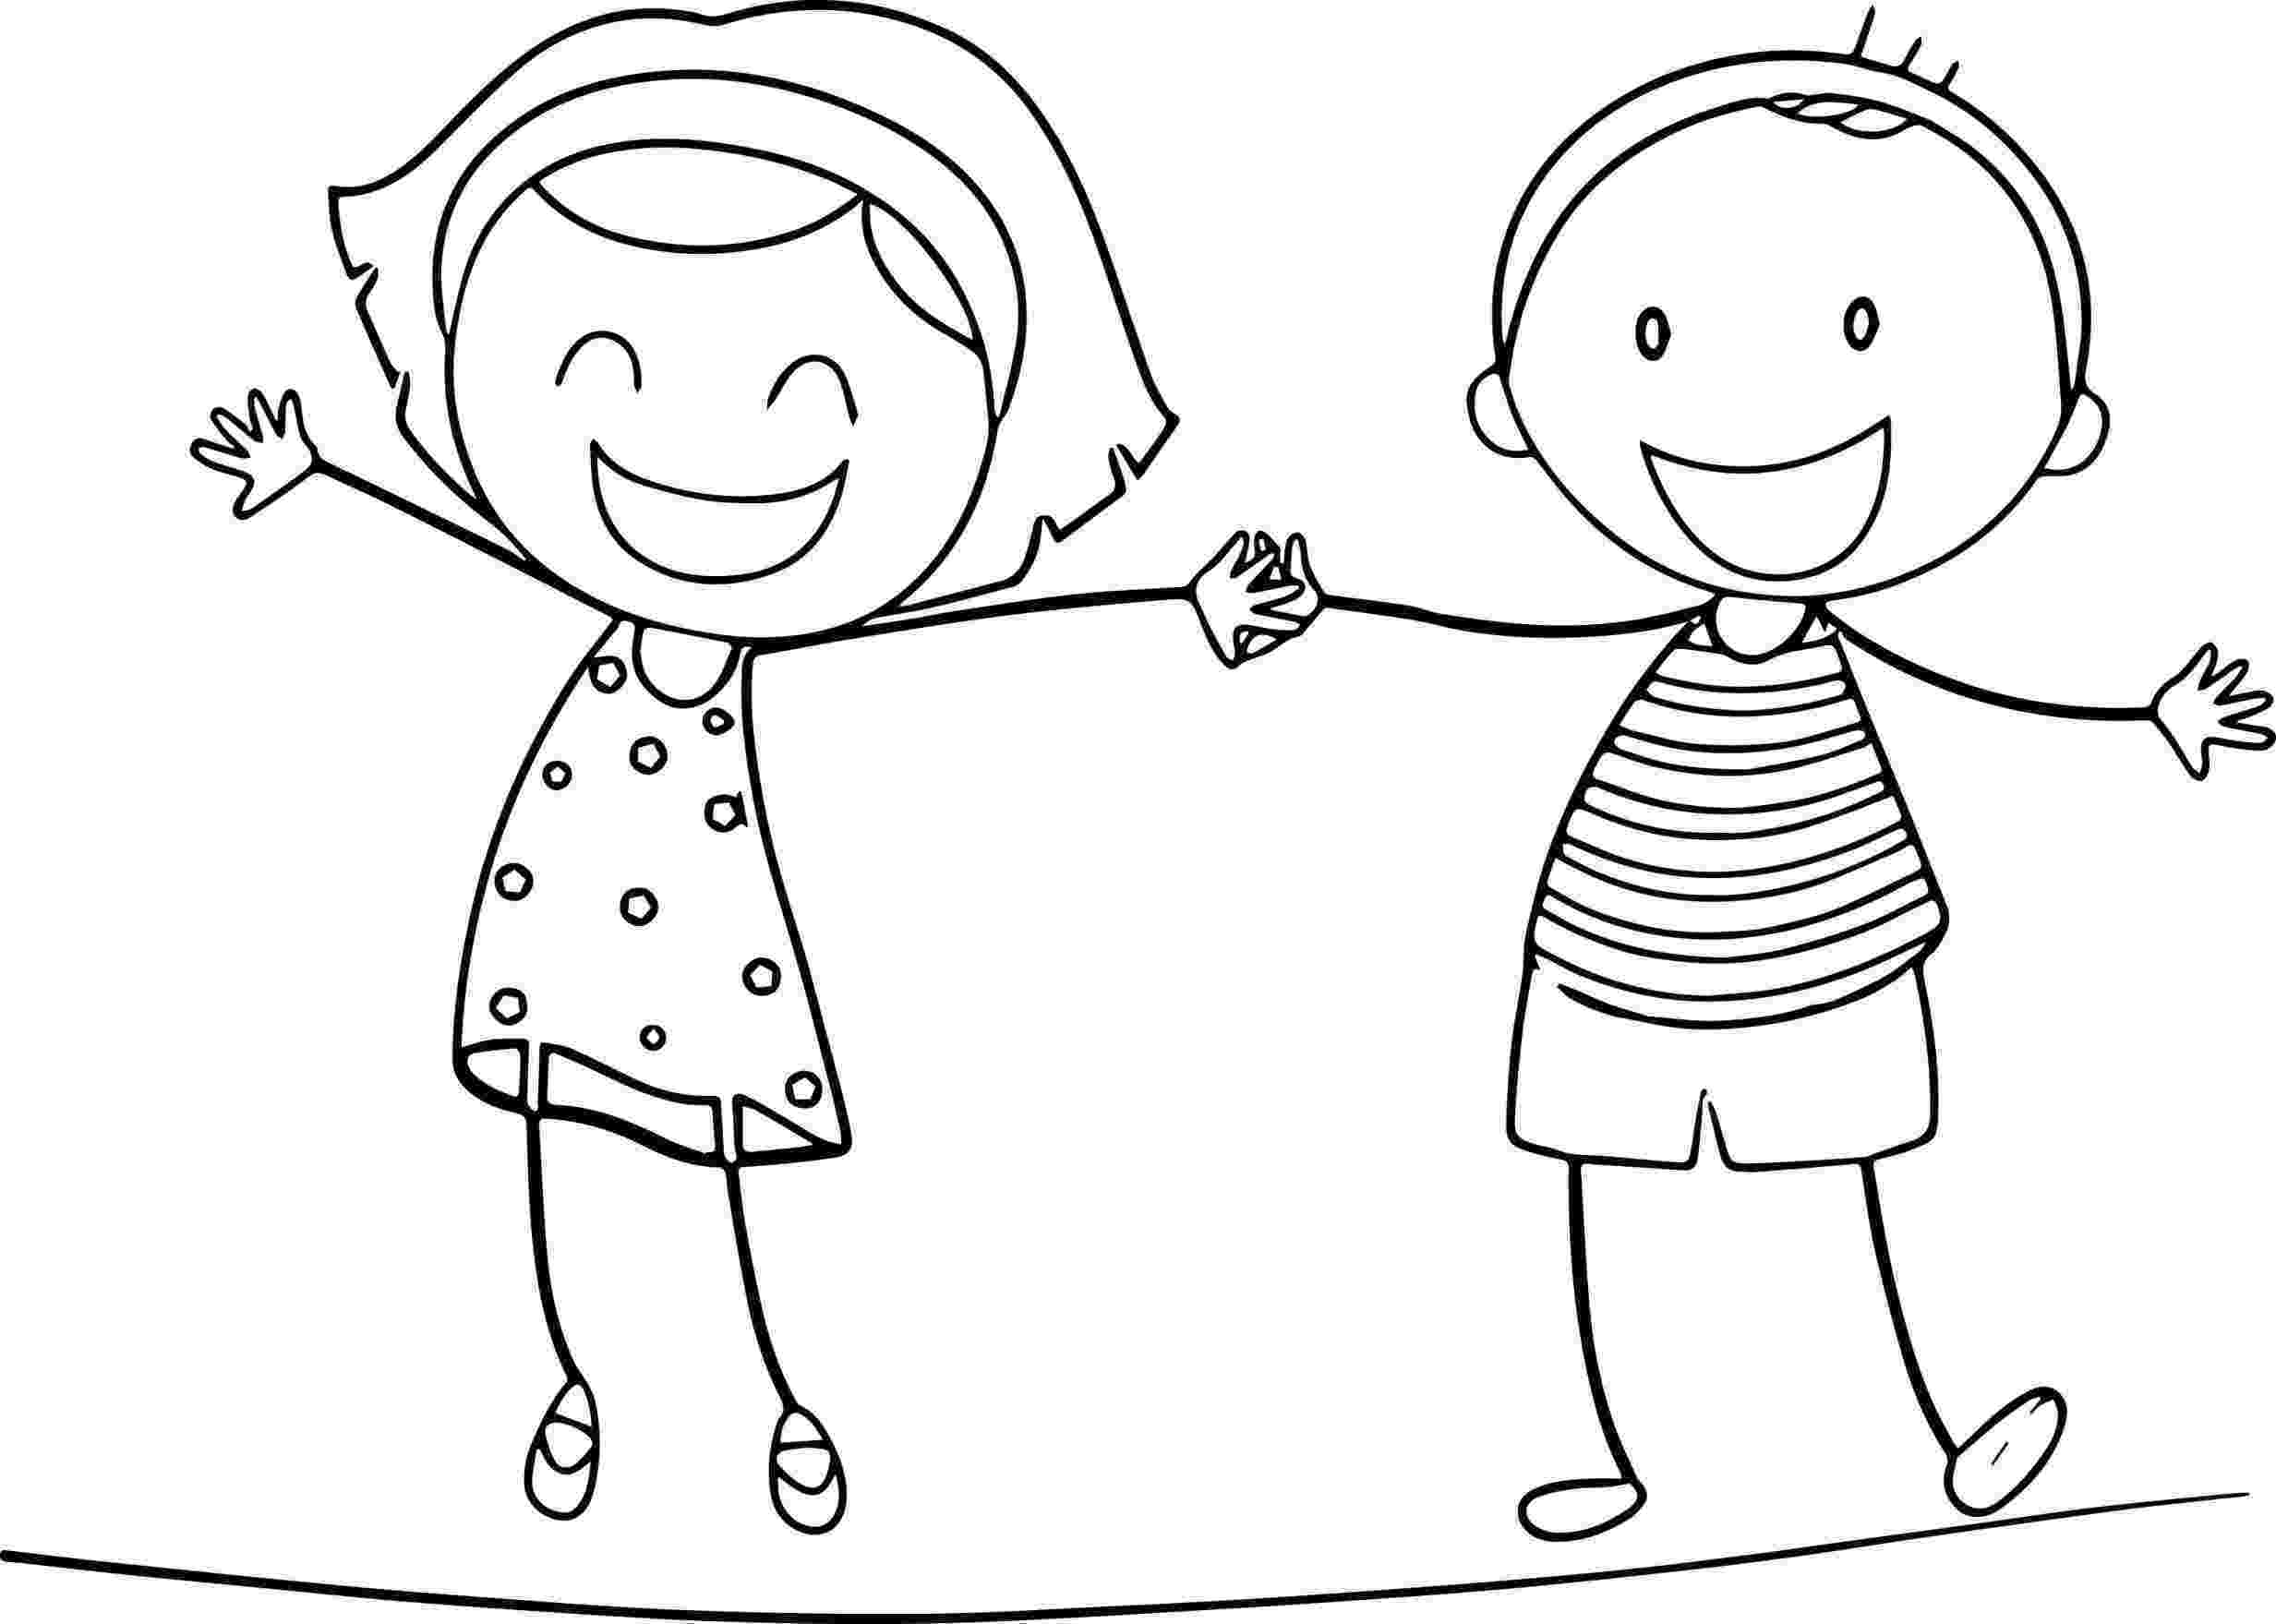 picture of a girl to color i am a girl coloring page twisty noodle color to a of girl picture